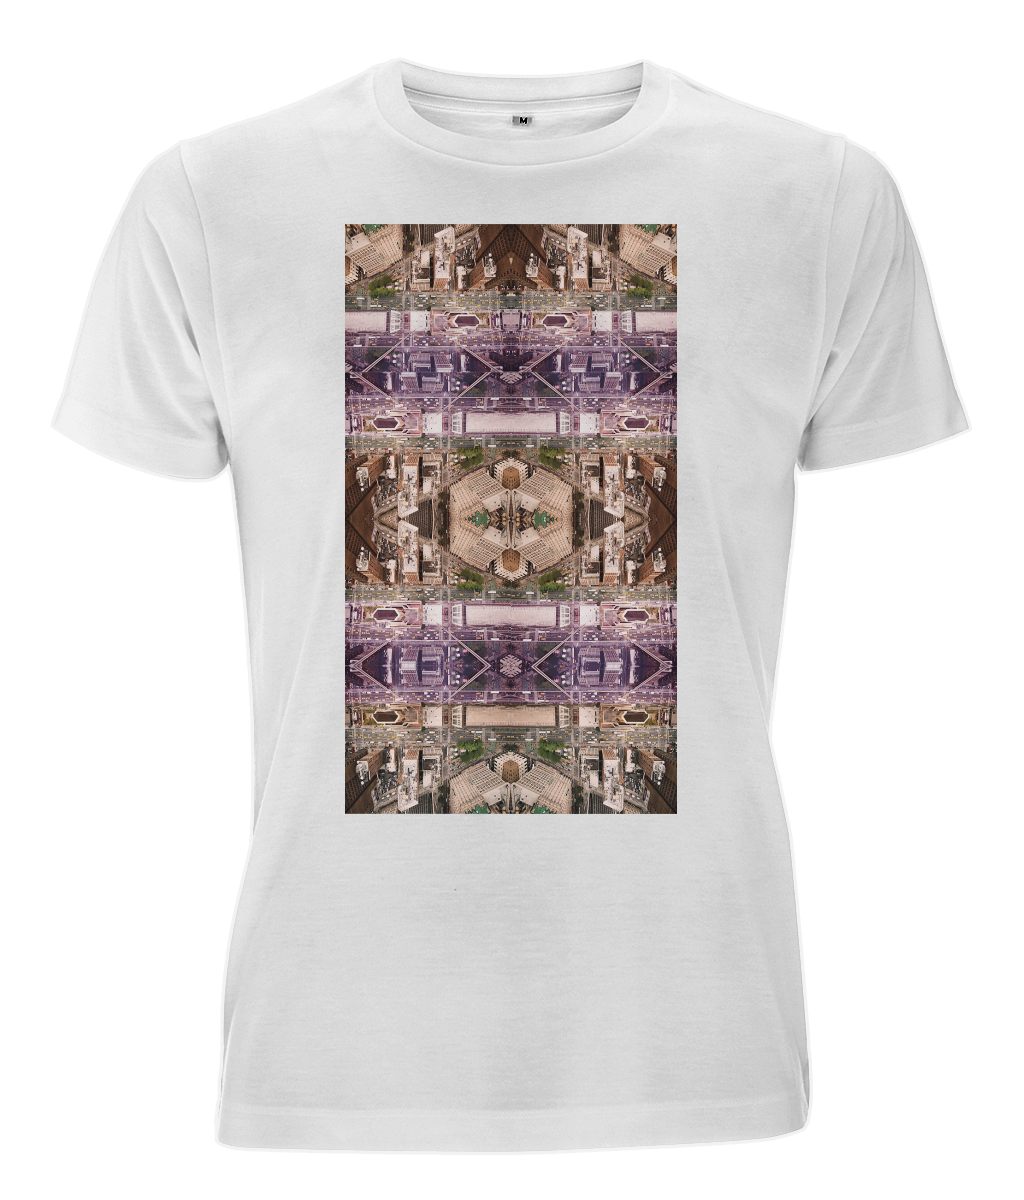 Perspective Drone Print Recycled Polyester Classic Tee - MOTIVATEE